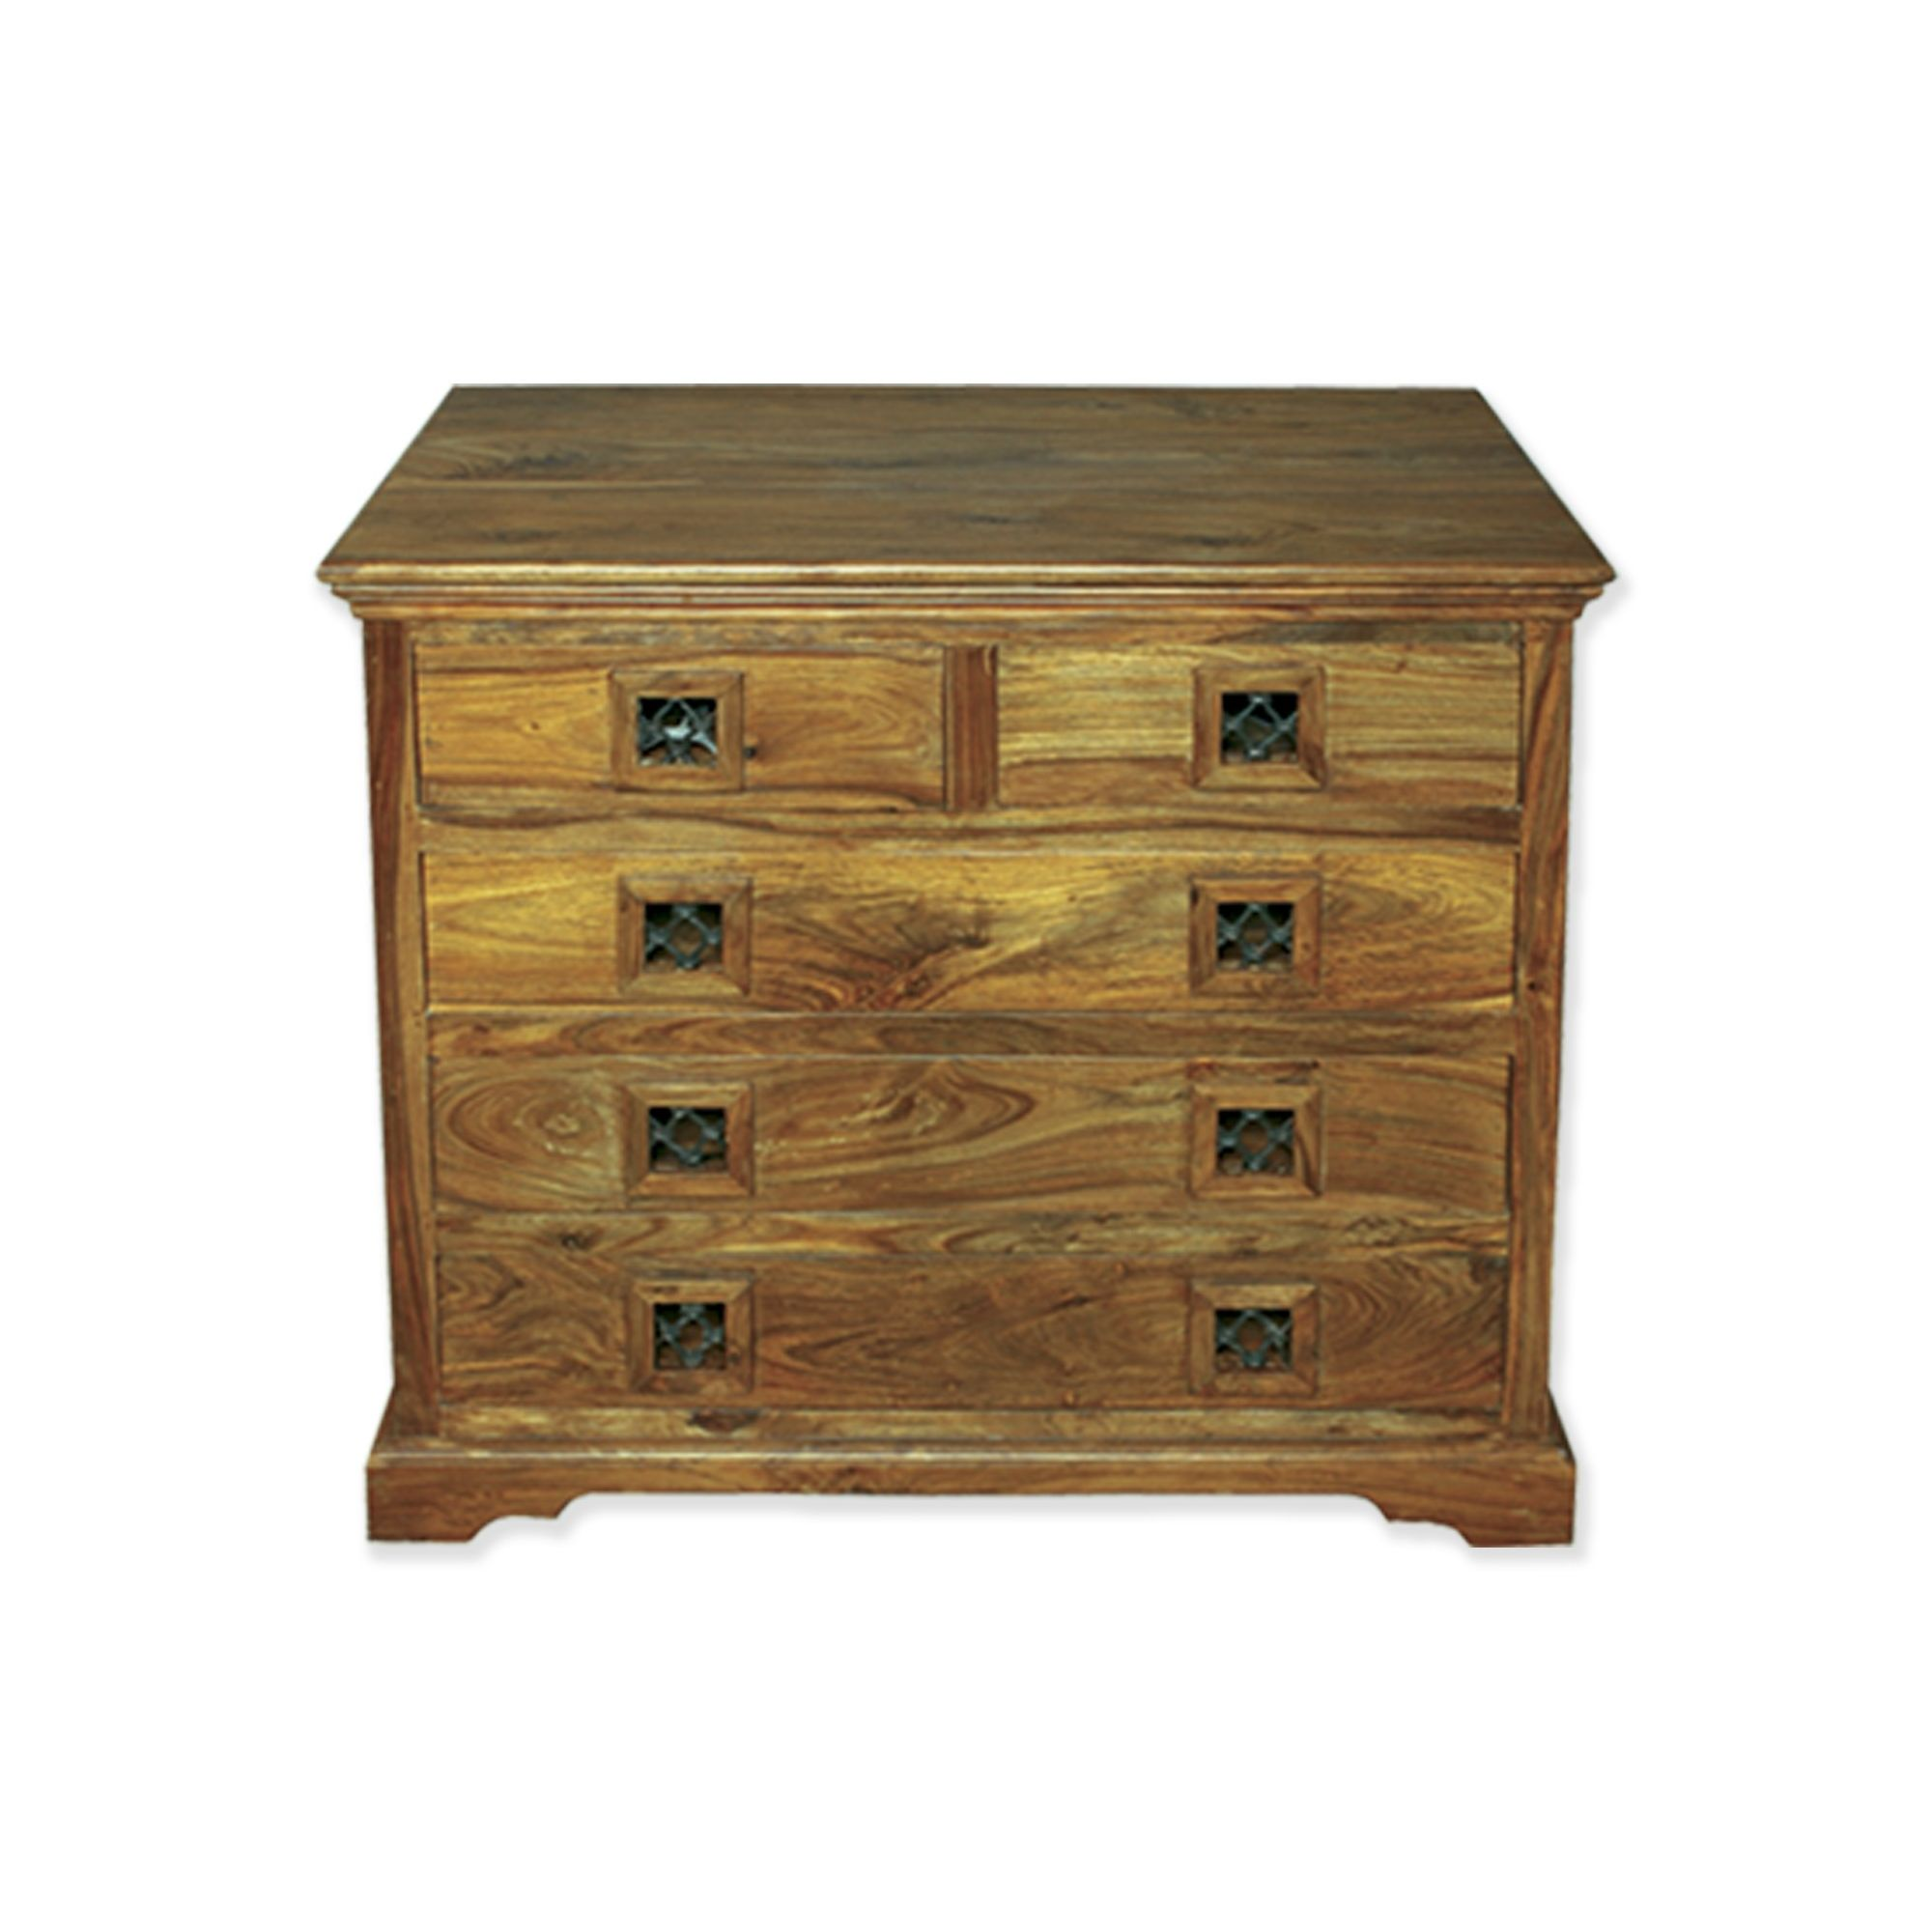 Elements Jaitu Block Five Drawer Chest in Warm Lacquer at Tesco Direct